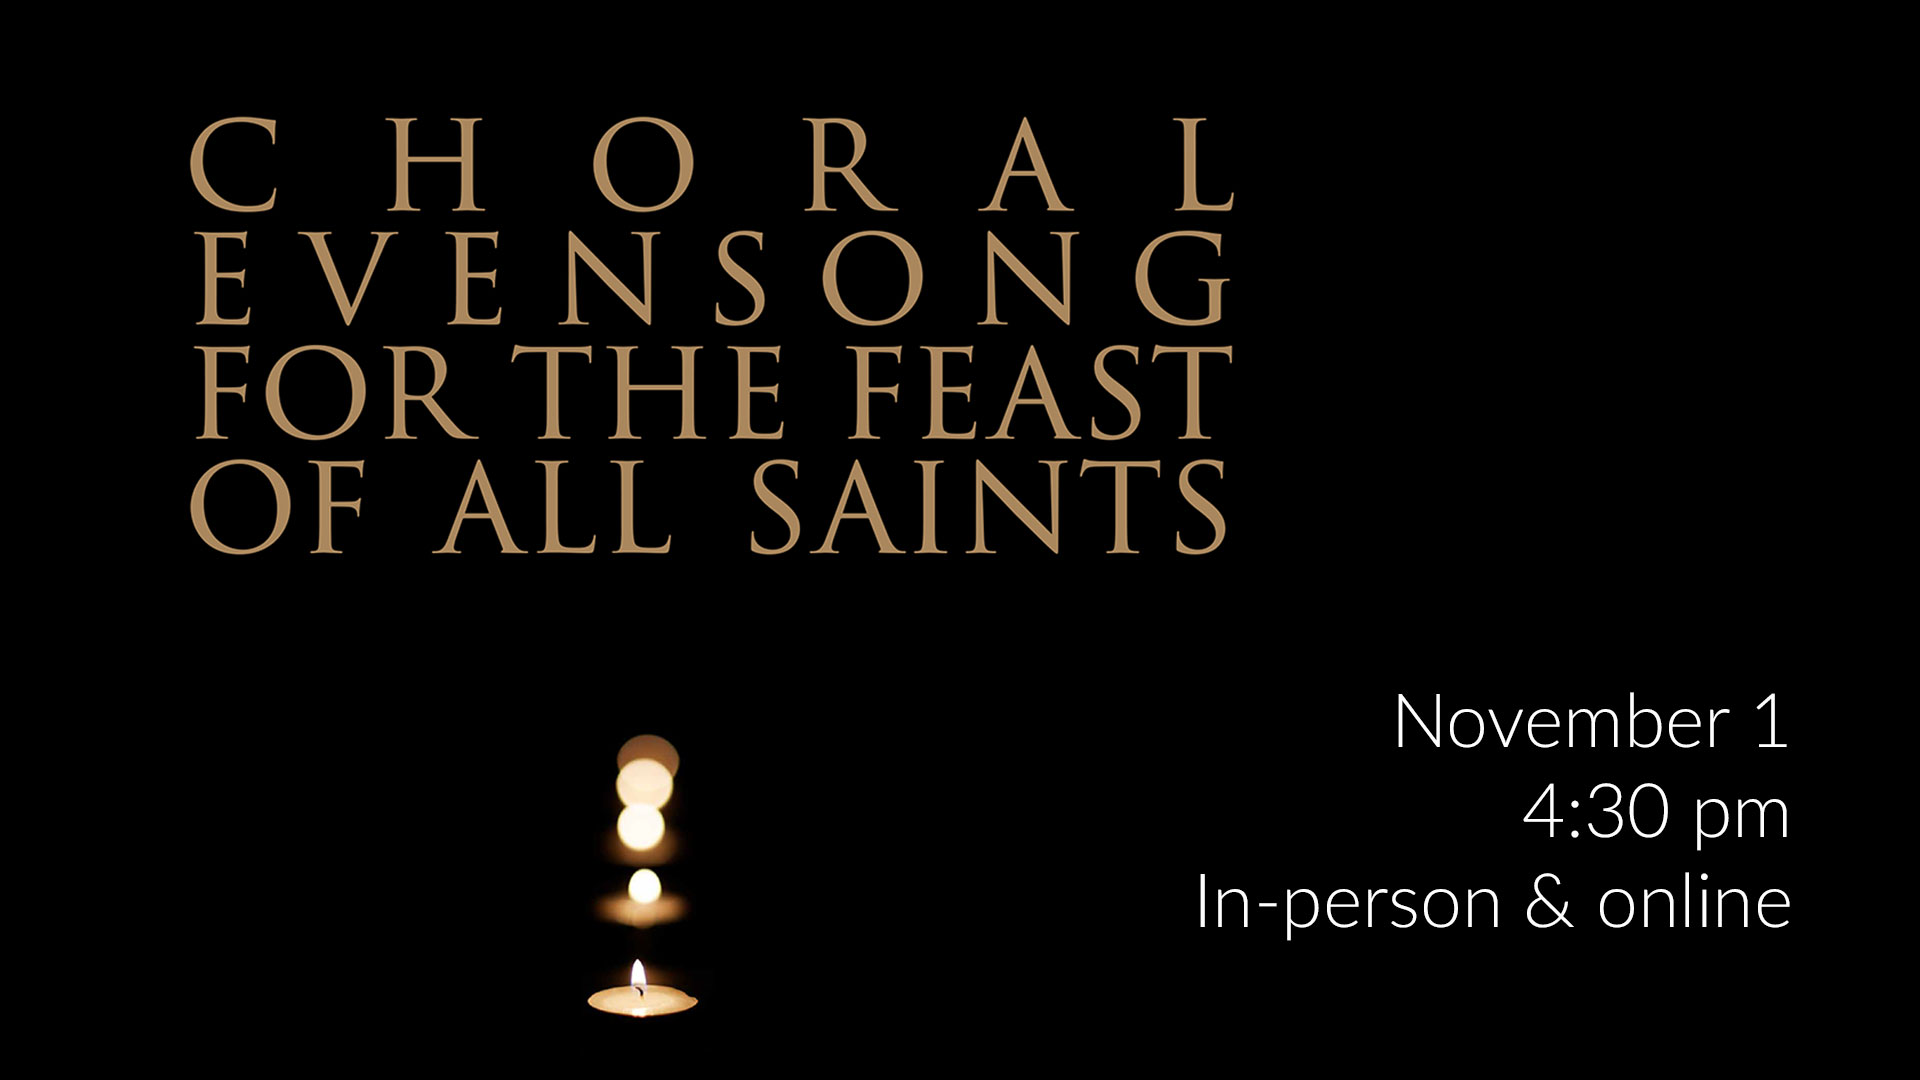 Choral Evensong for the Feast of All Saints